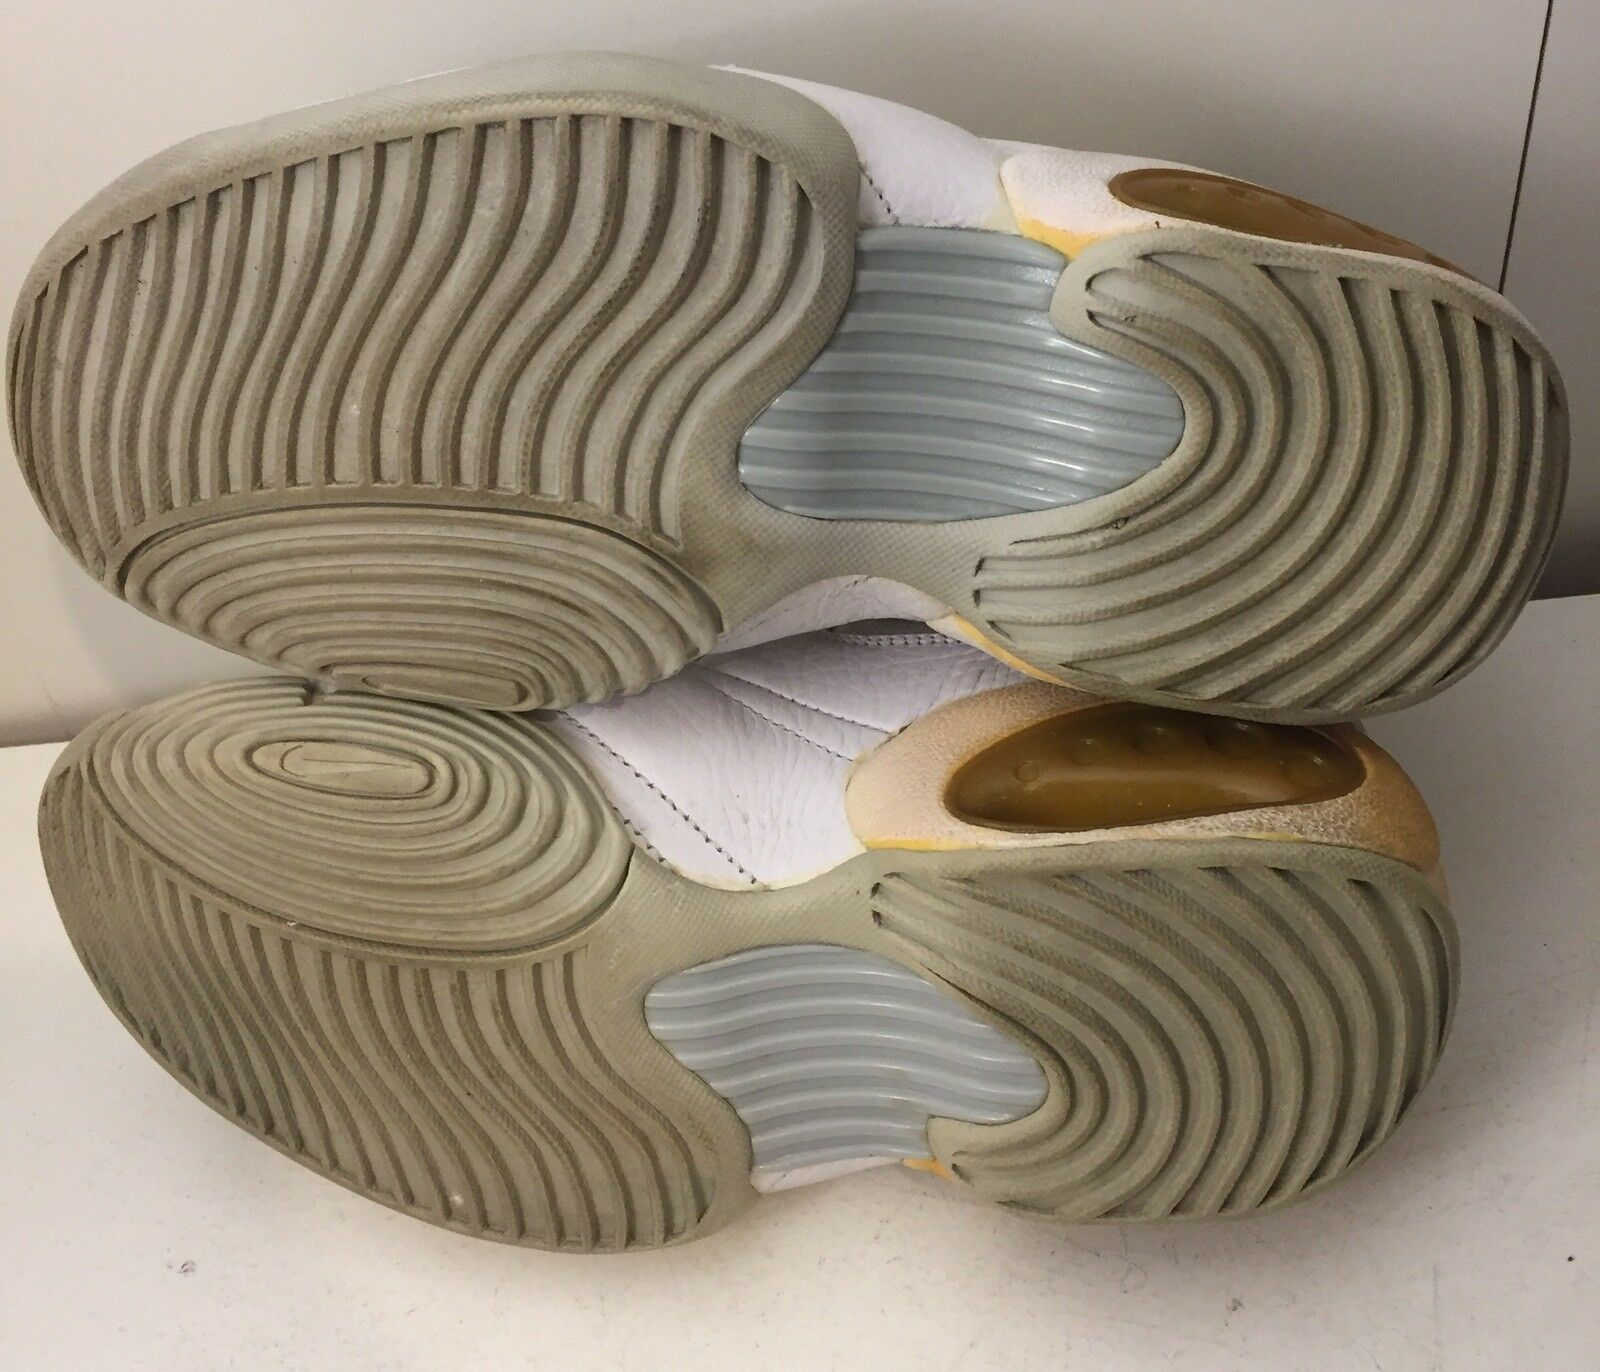 Vintage 1999 Nike Air Flight Perception Basketball 1990s 8 830567 110 Schuhes SZ 8 1990s 776c97